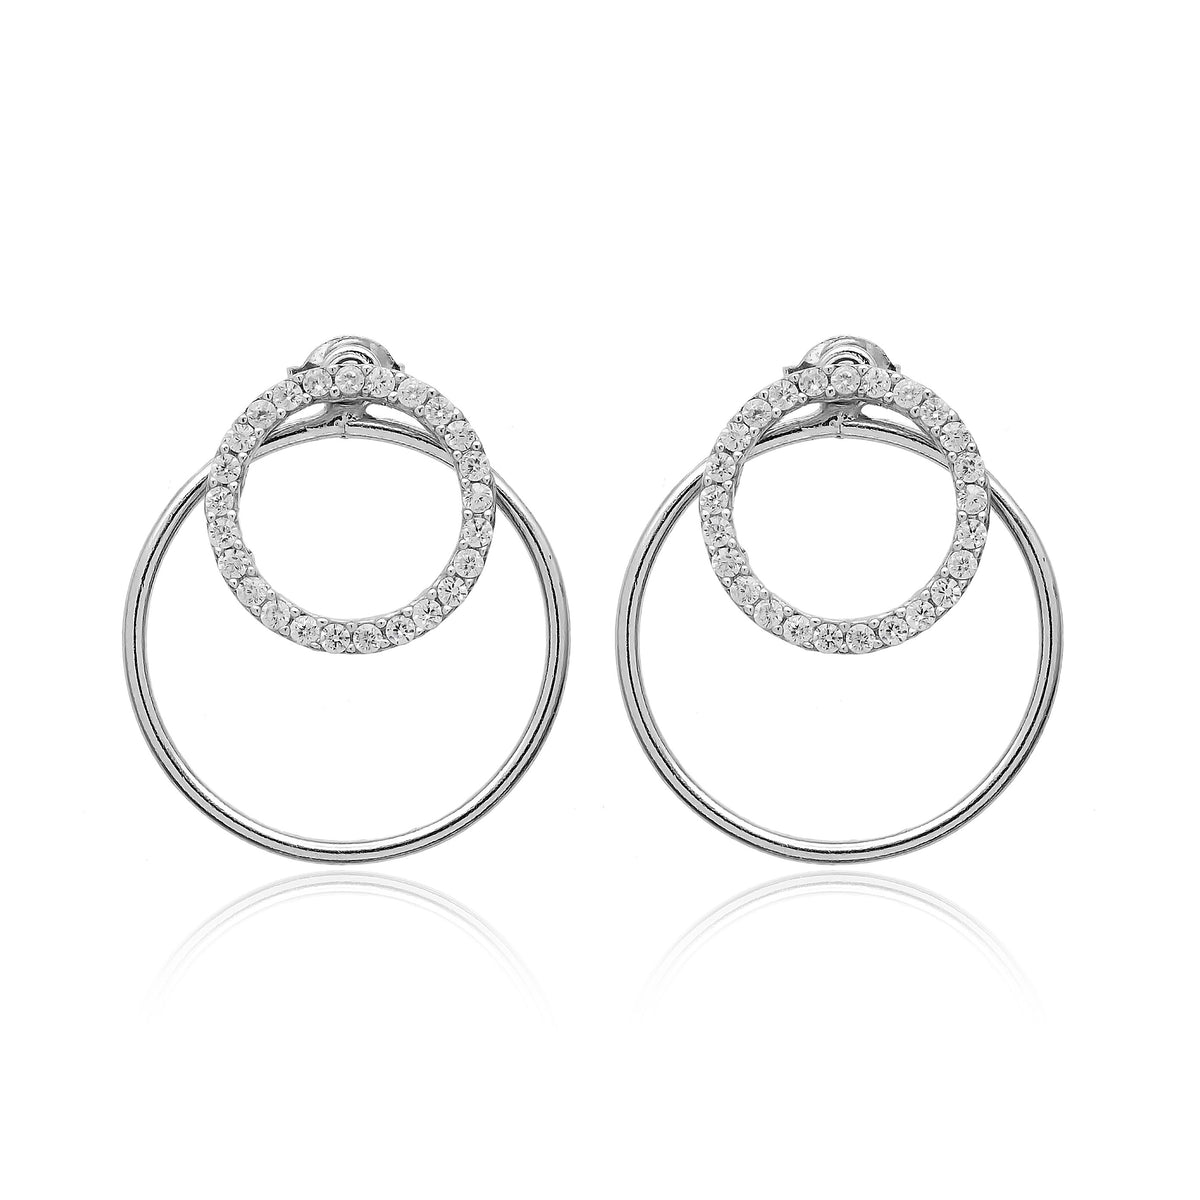 Leila Silver Earrings